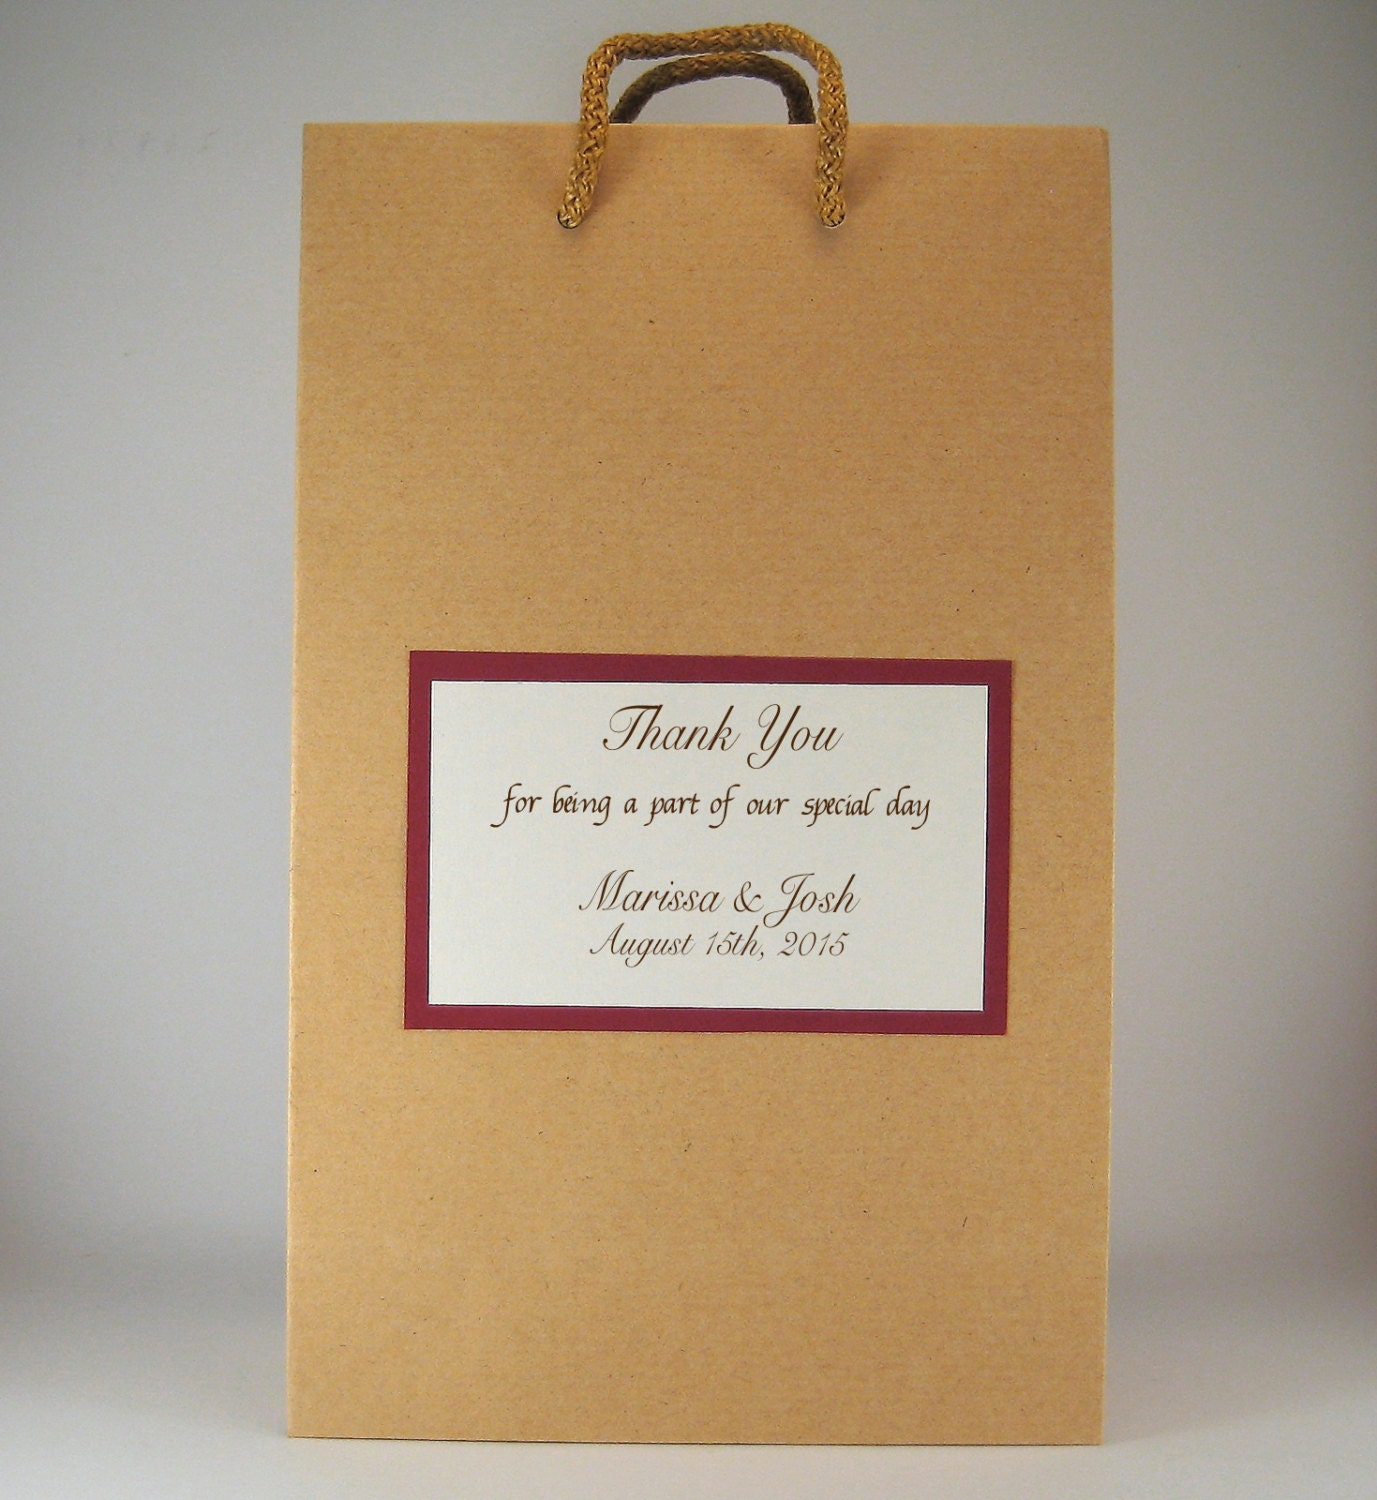 Personalised Wedding Favour Paper Bags : Personalized Wedding Favor Bags 50 Rustic Wedding Gift Bags